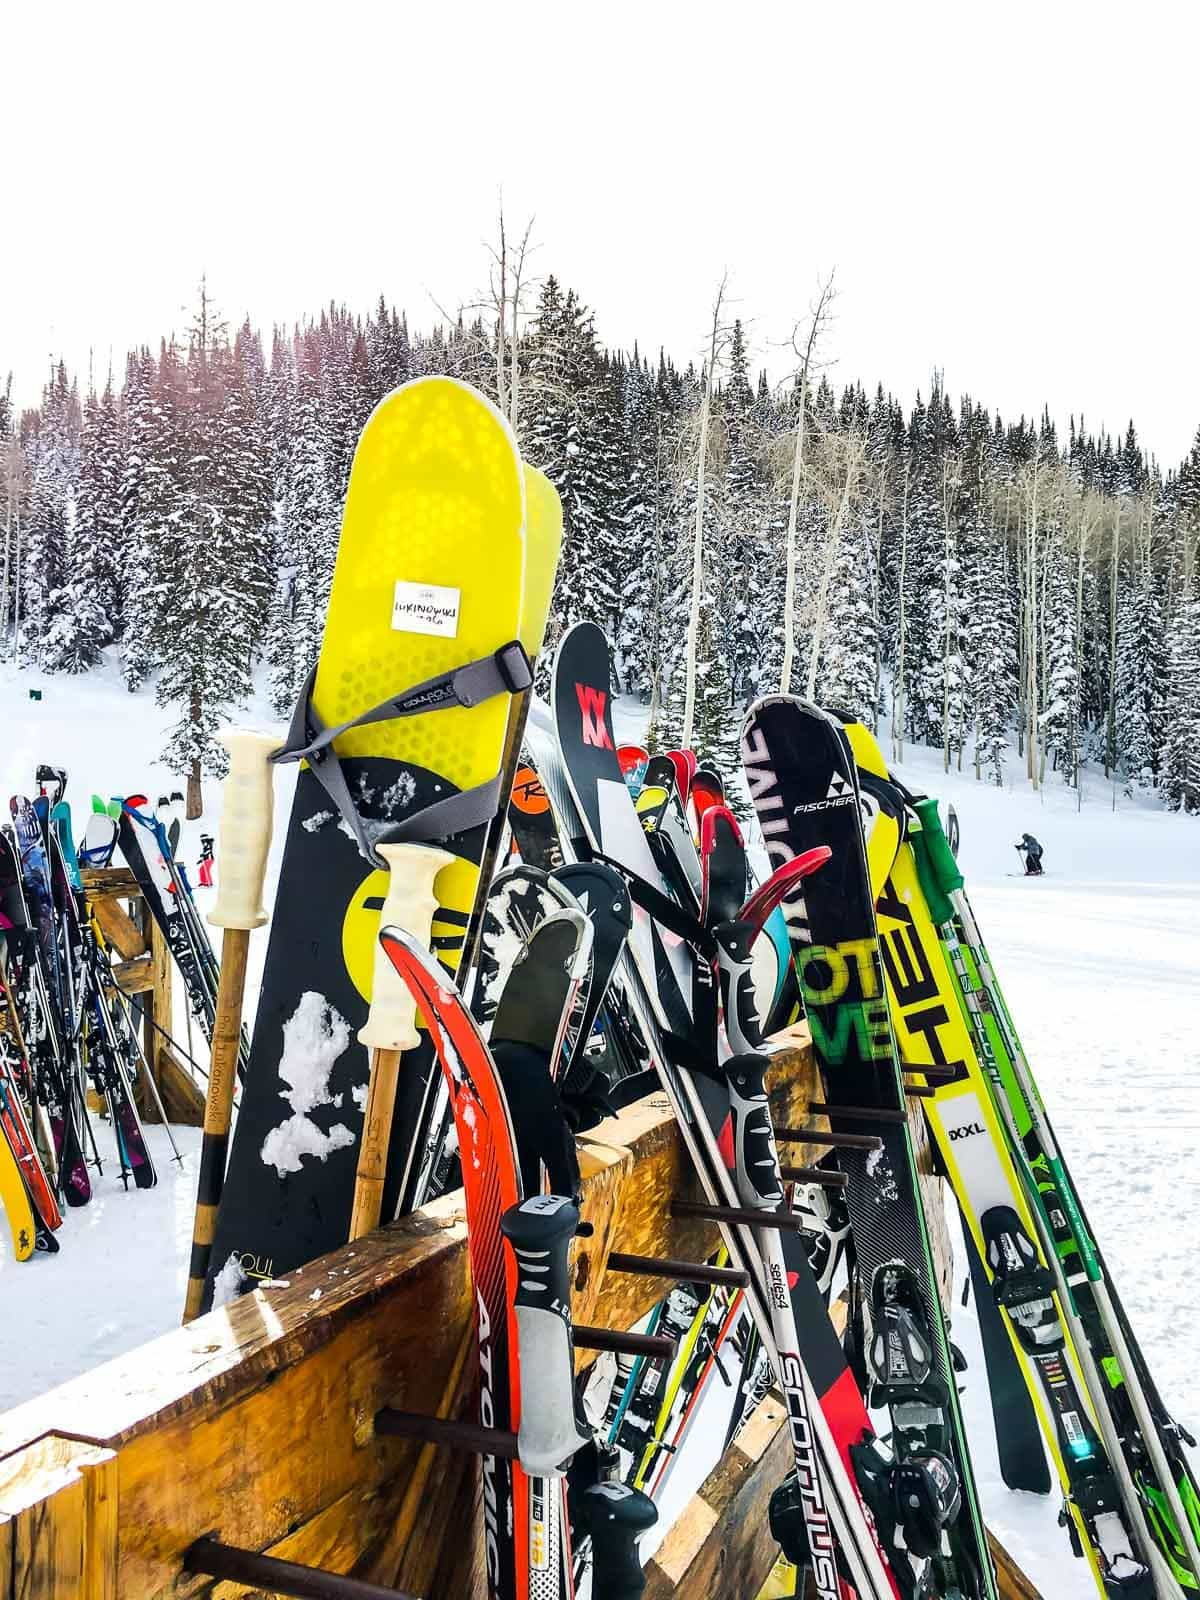 A ski and snowboard storage spot at Deer Valley